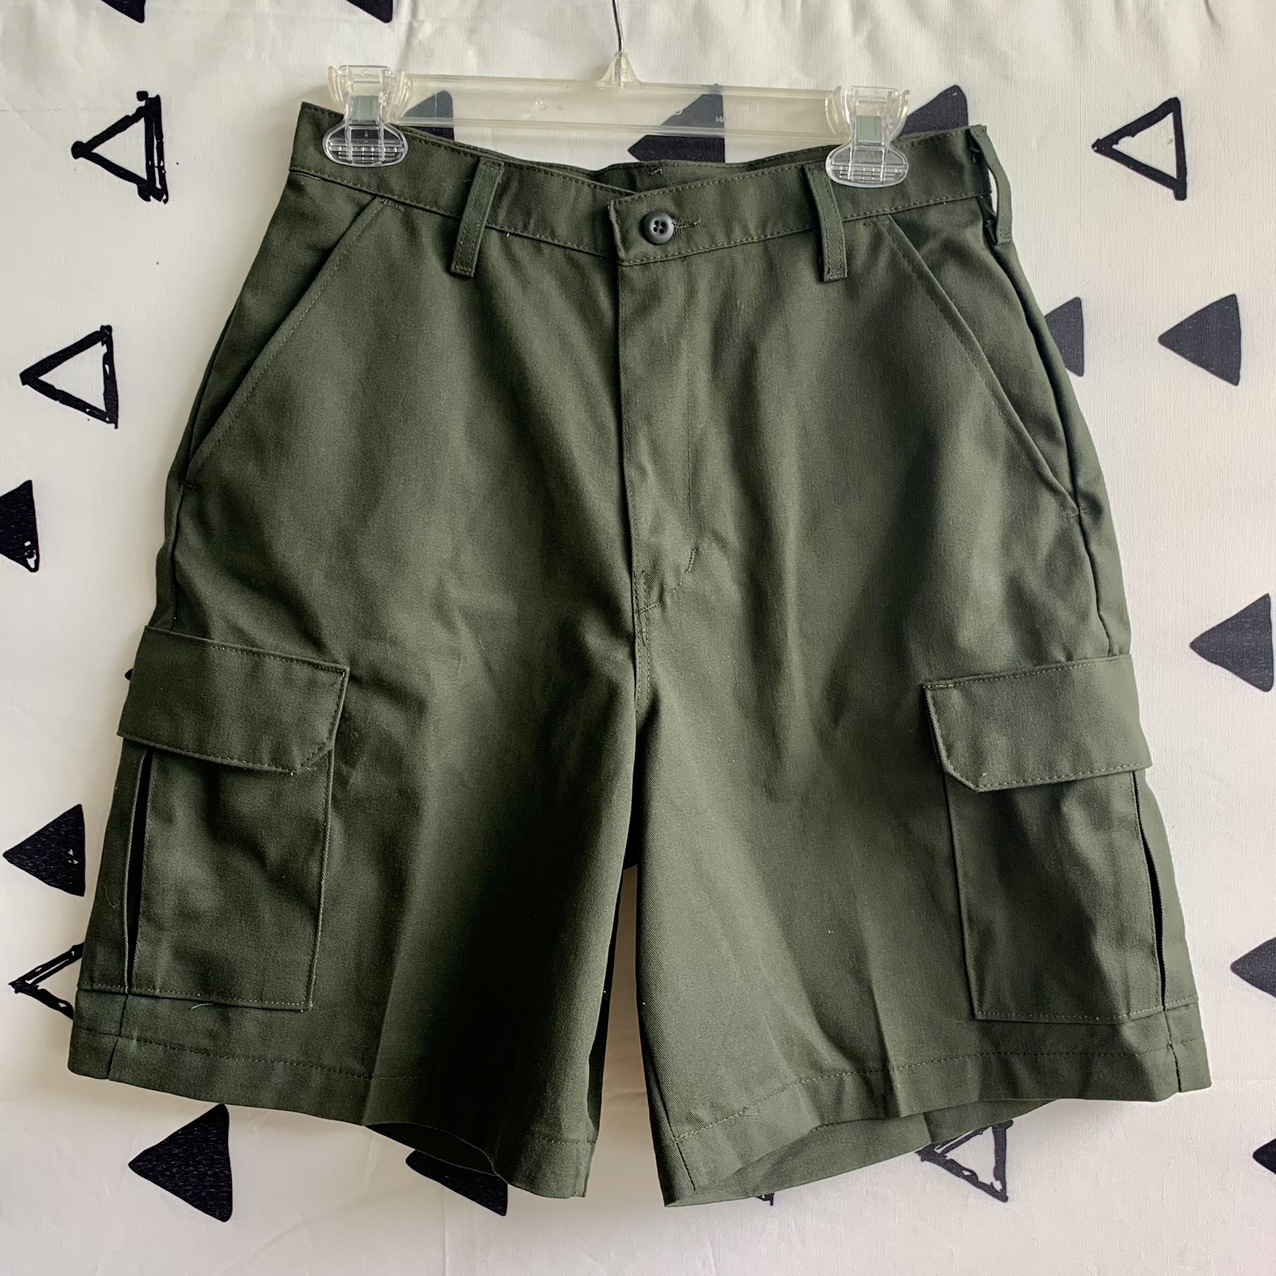 Product Image 1 - Cargo shorts  Dark green color Dead